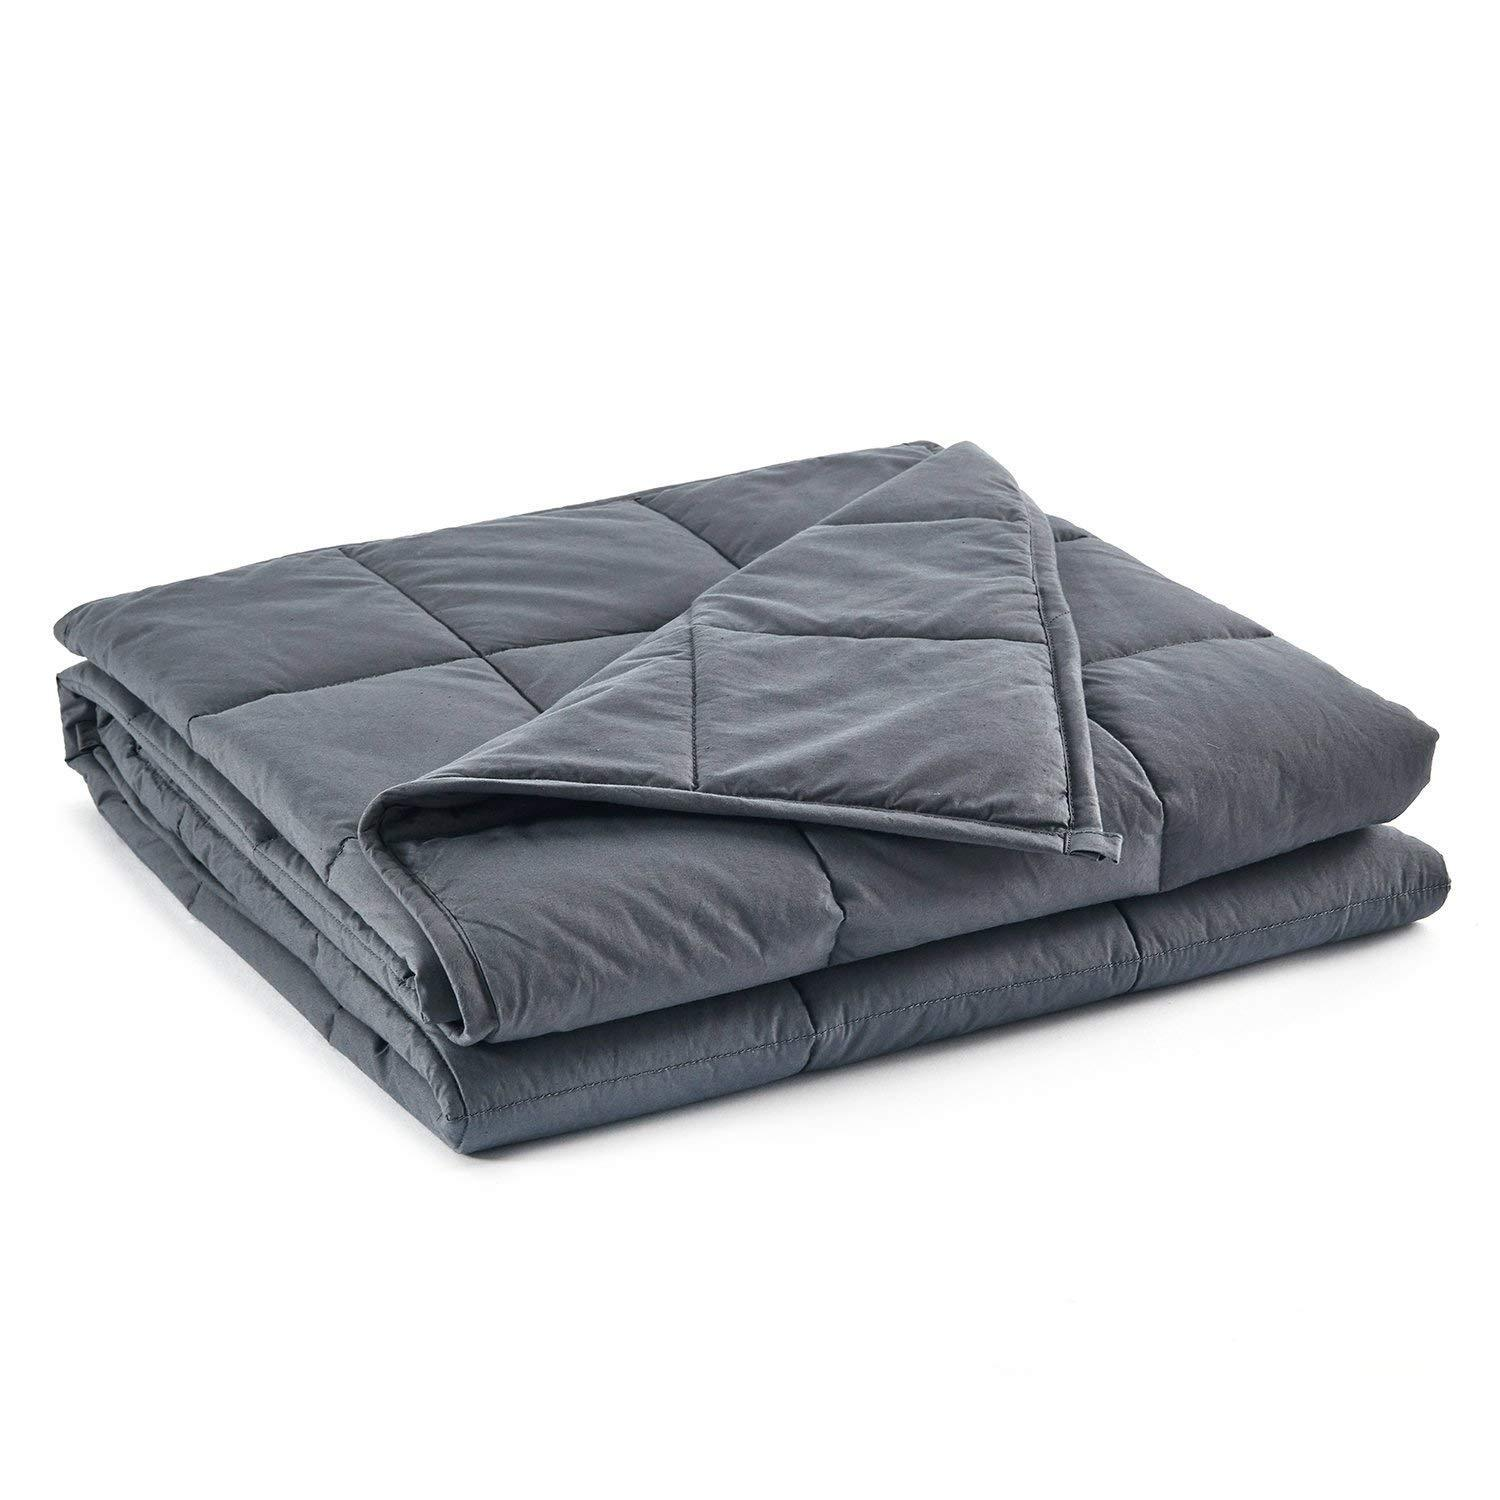 60''x80'' 22lbs Premium Cotton Weighted Heavy Blanket for An